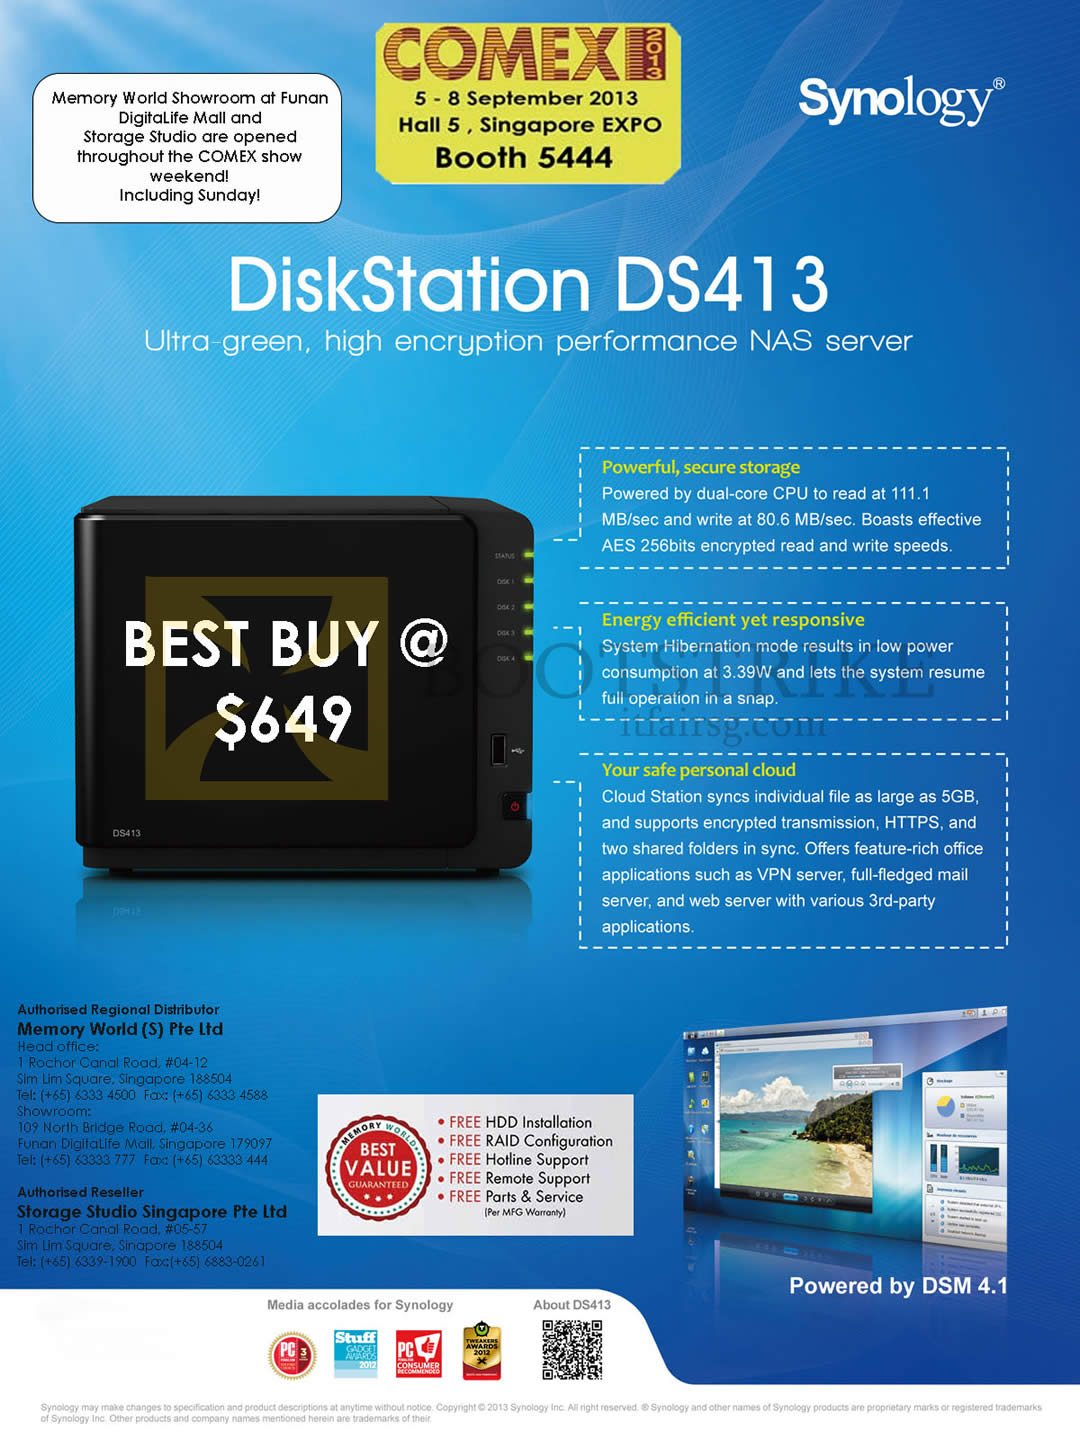 COMEX 2013 price list image brochure of Memory World Synology NAS DiskStation DS413